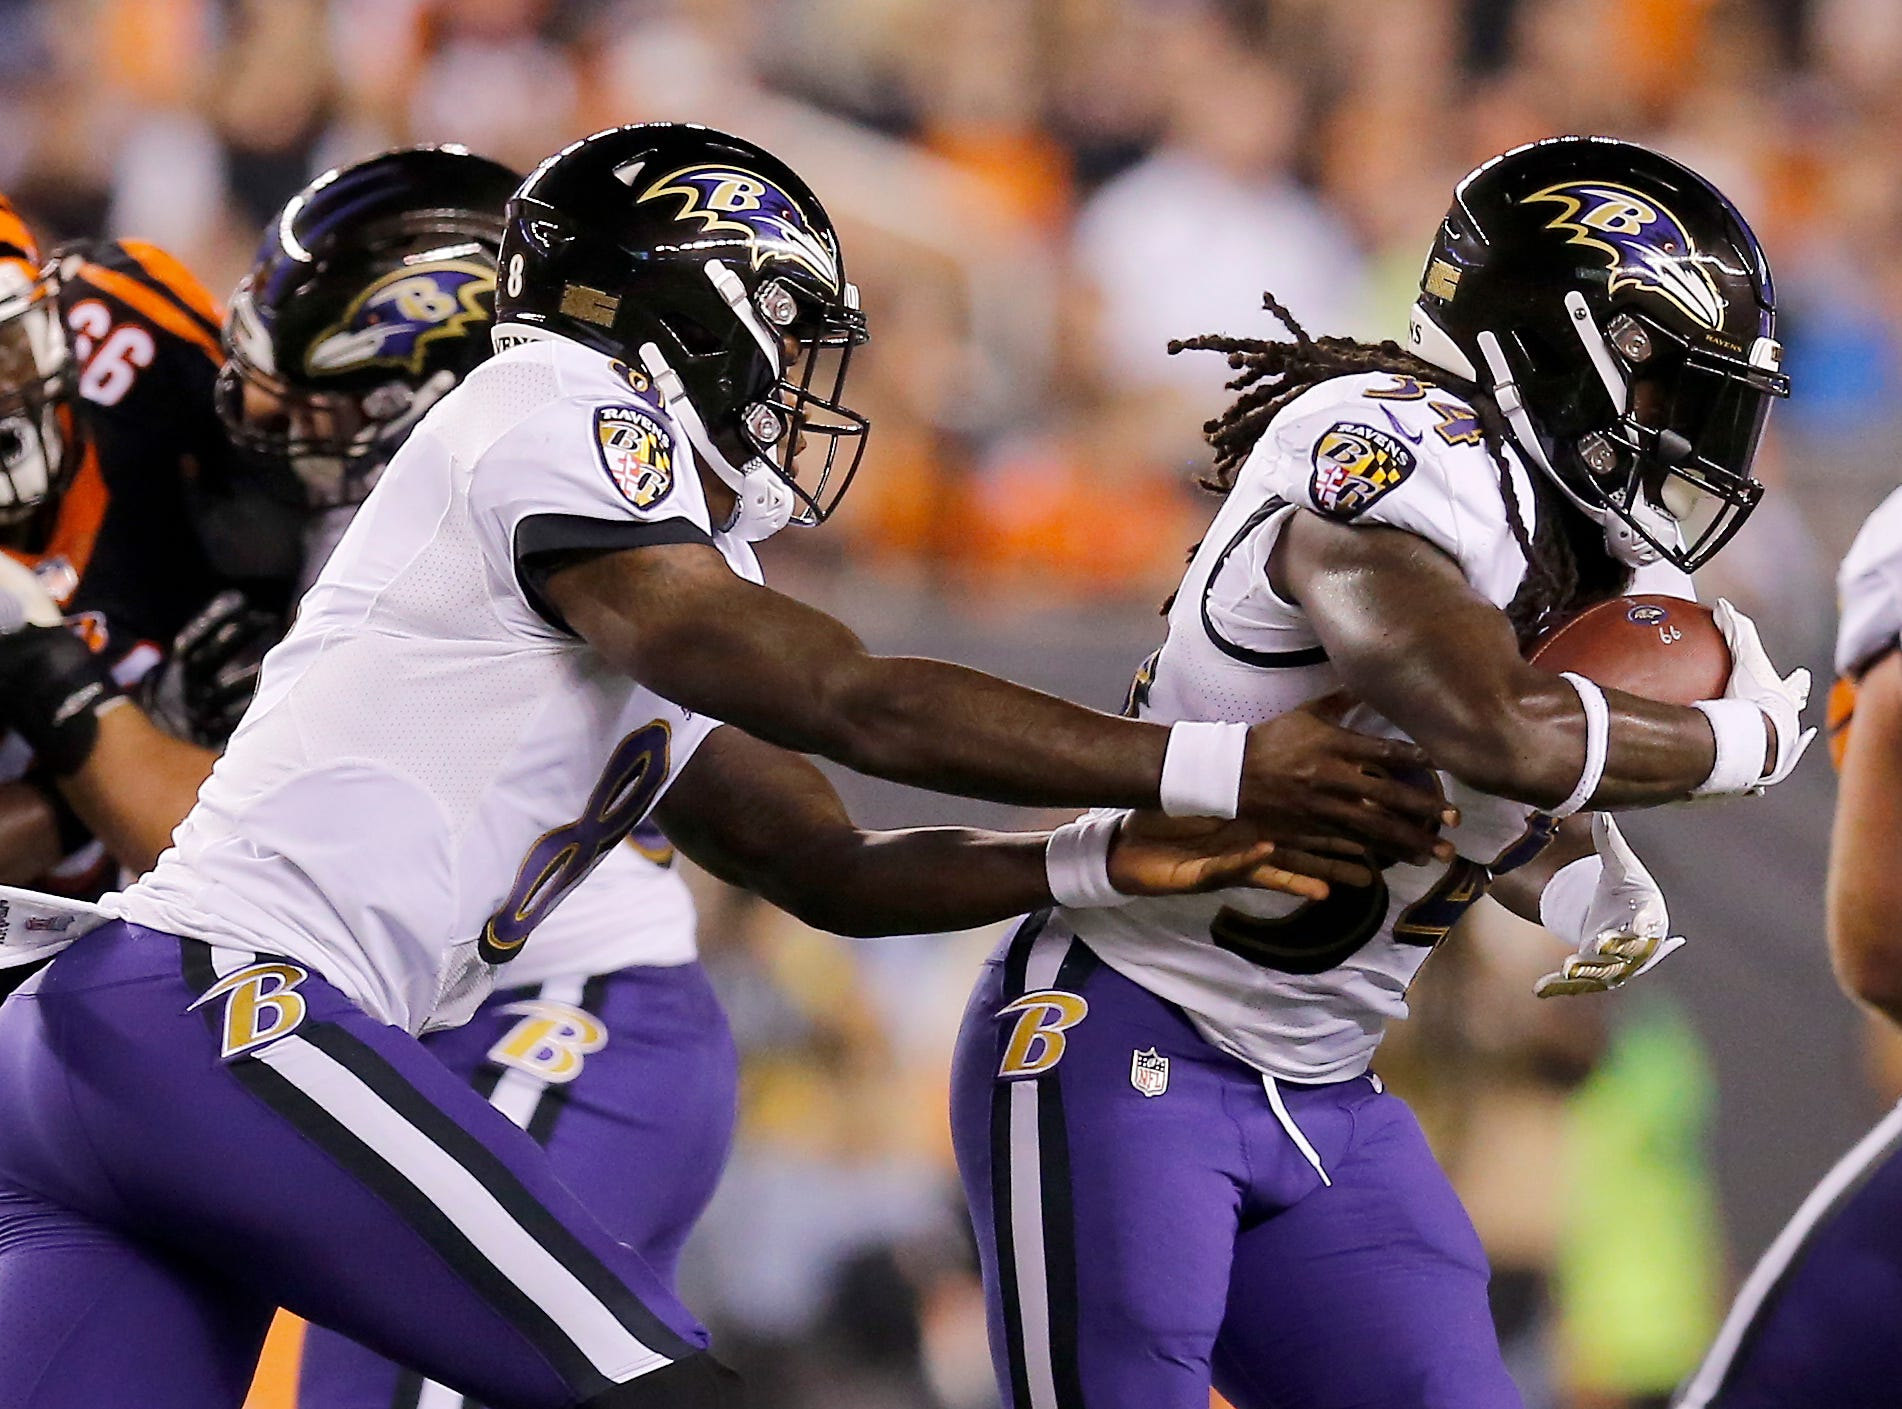 Baltimore Ravens quarterback Lamar Jackson (8) hands off to running back Alex Collins (34) in the first quarter of the NFL Week 2 game between the Cincinnati Bengals and the Baltimore Ravens at Paul Brown Stadium in downtown Cincinnati on Thursday, Sept. 13, 2018. The Bengals led 28-14 at halftime.